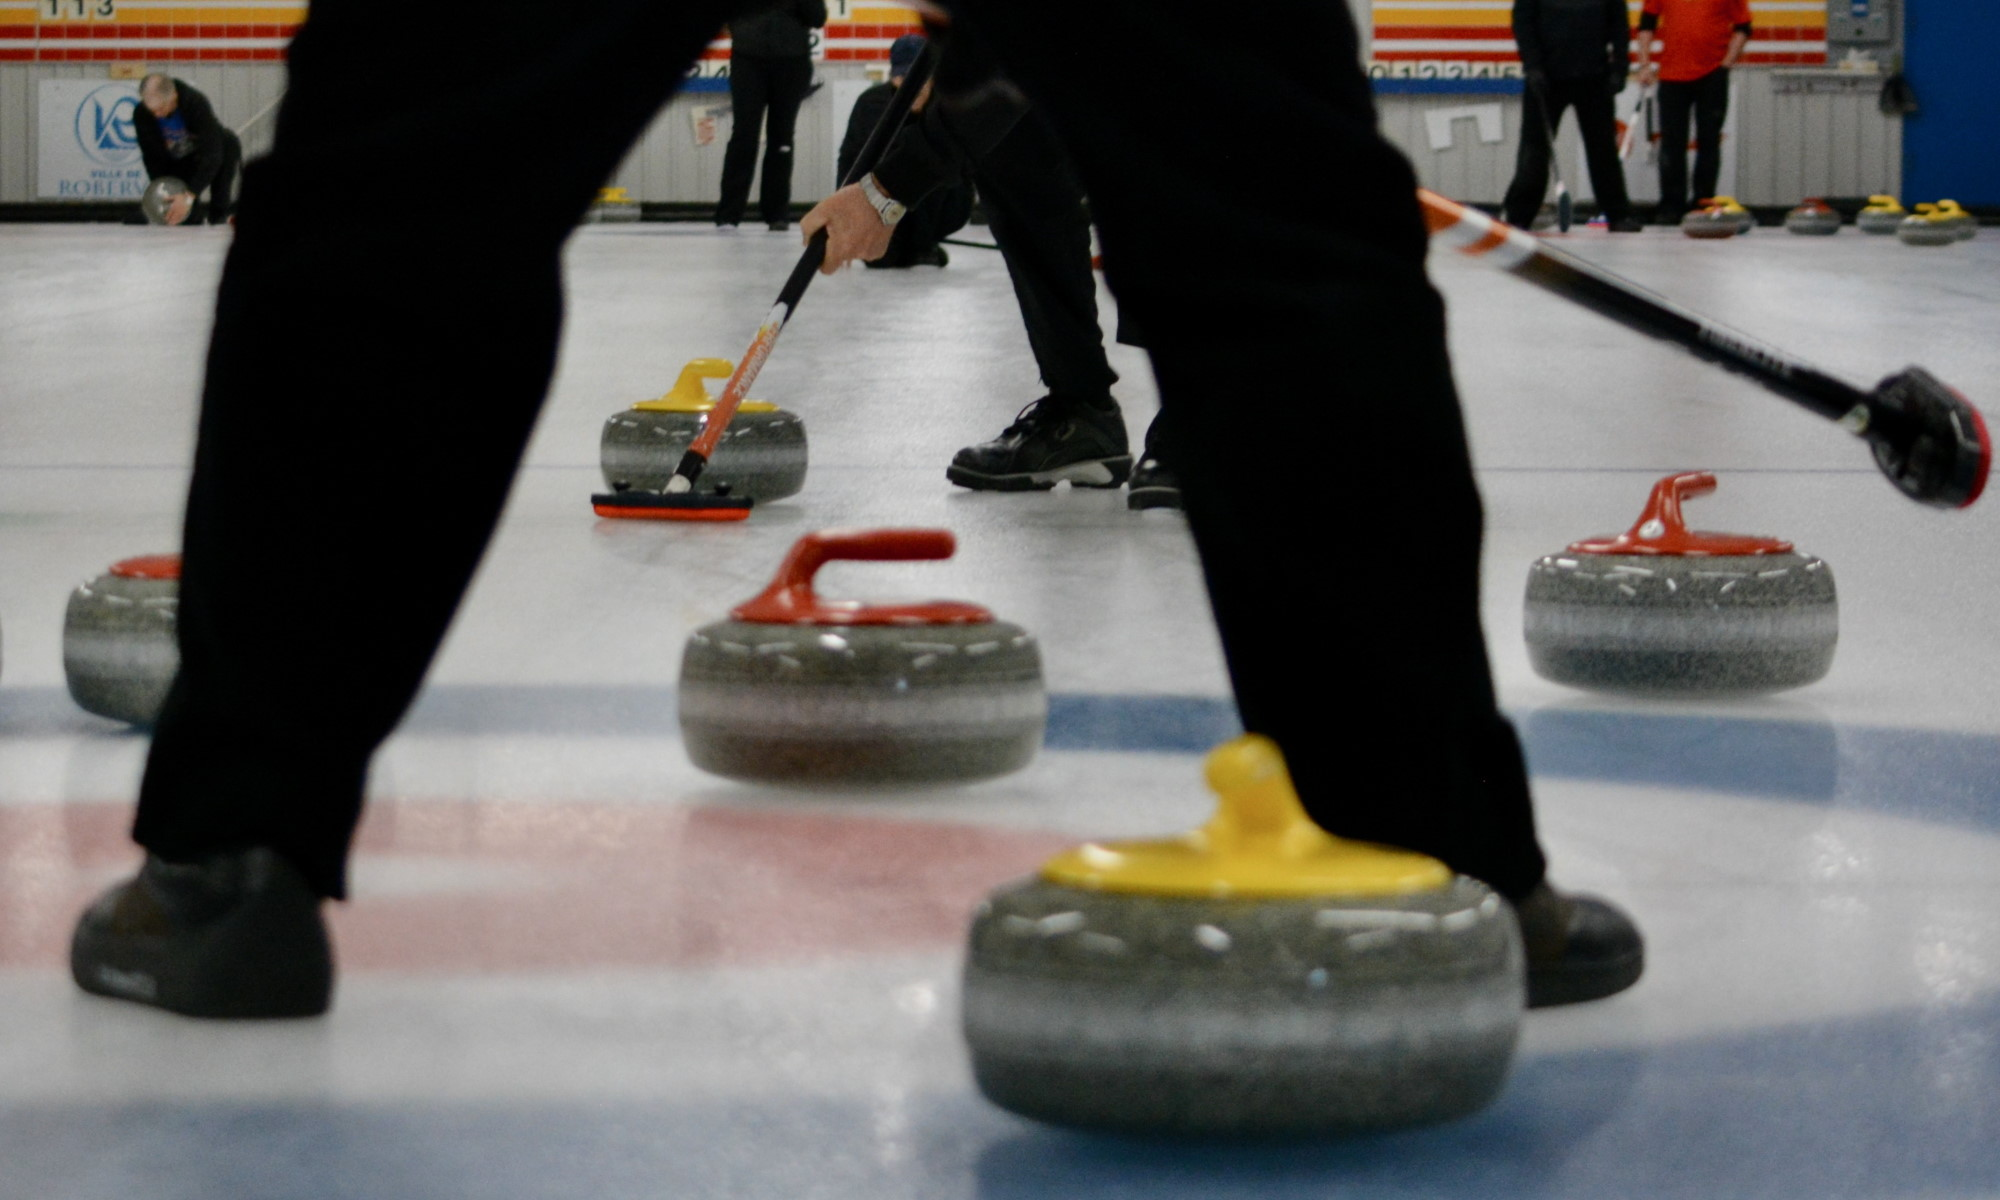 Club Curling Roberval